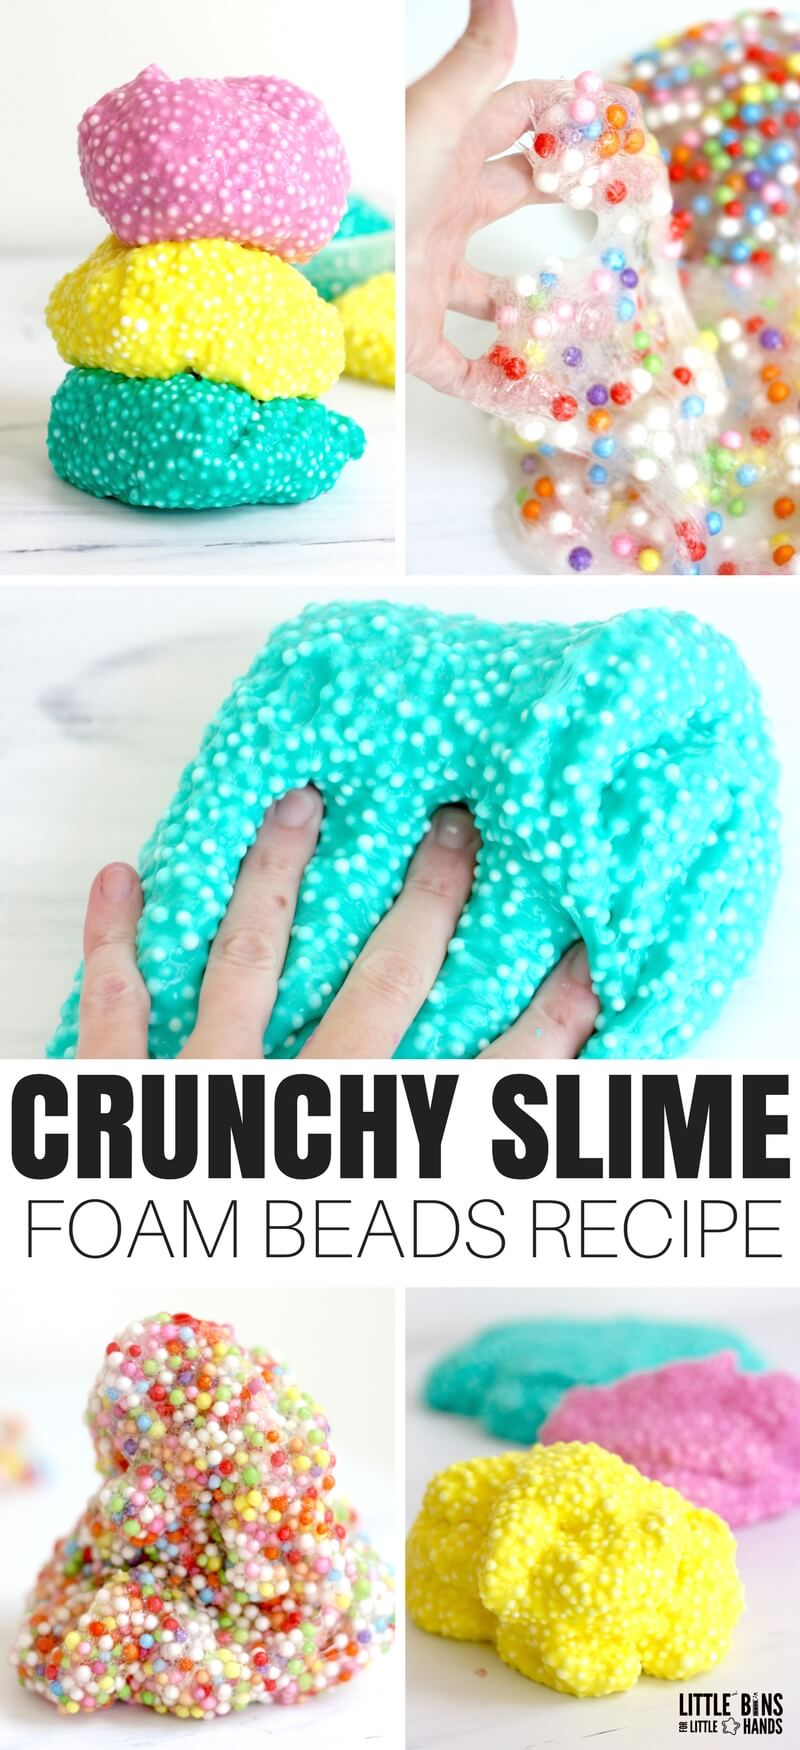 Have you heard of crunchy slime and wondered exactly what's in it? Let's learn how to make crunchy slime using foam beads, and I will also show you another type of crunchy slime with fishbowl beads! We have been experimenting with our crunchy slime recipes and have a few variations to share with you. Homemade slime is always an experiment when you try out new ideas!